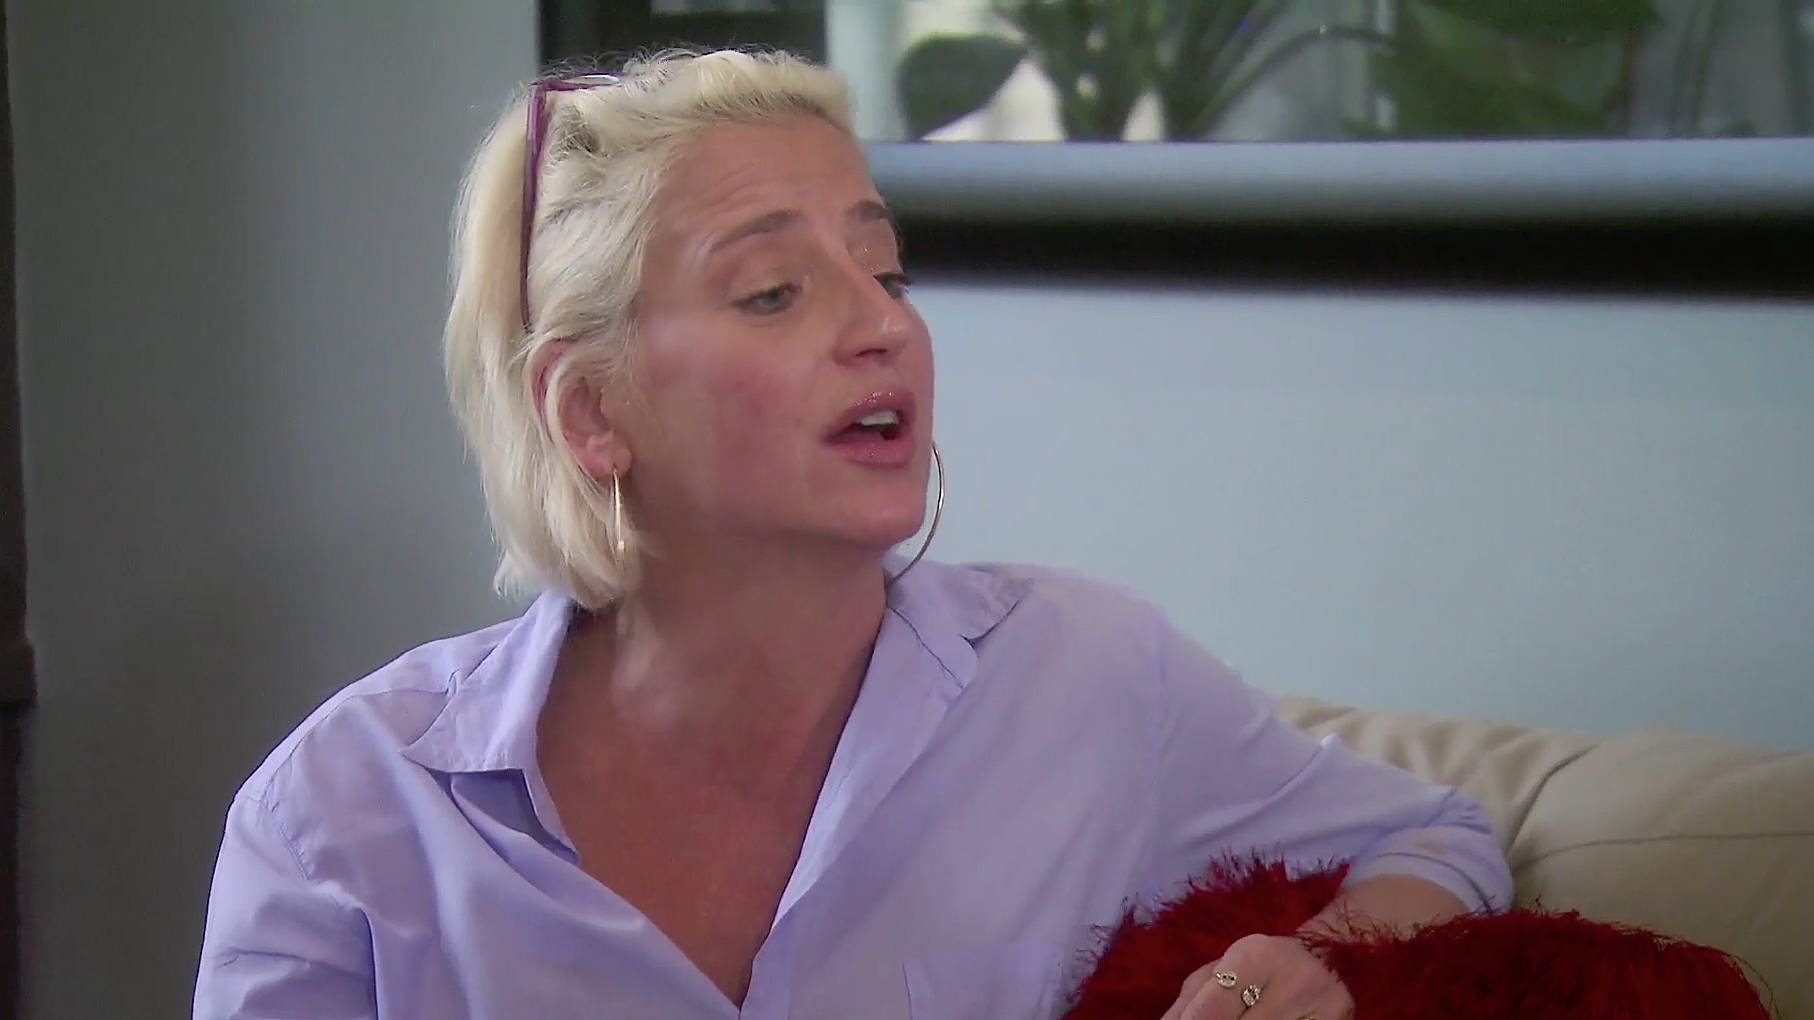 RHONY's Dorinda Medley Defends Her Relationship With Luann de Lesseps After Family Lawsuit Drama: Watch